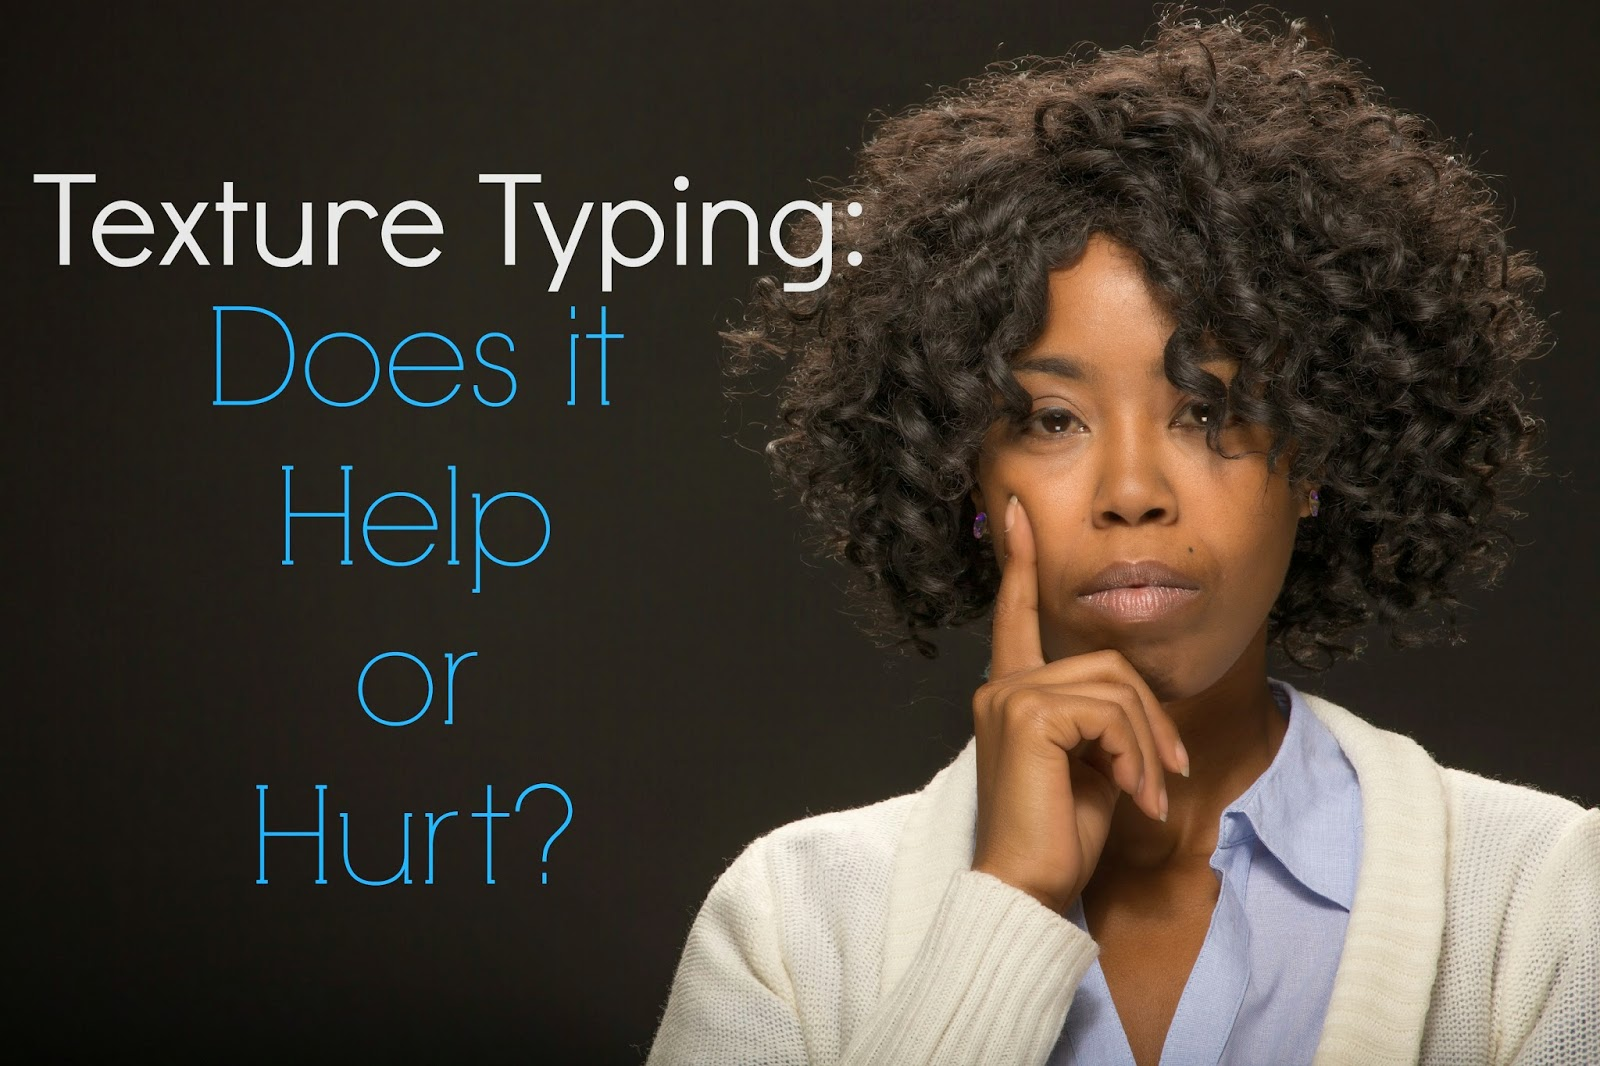 Texture Typing: Does it Help or Hurt?